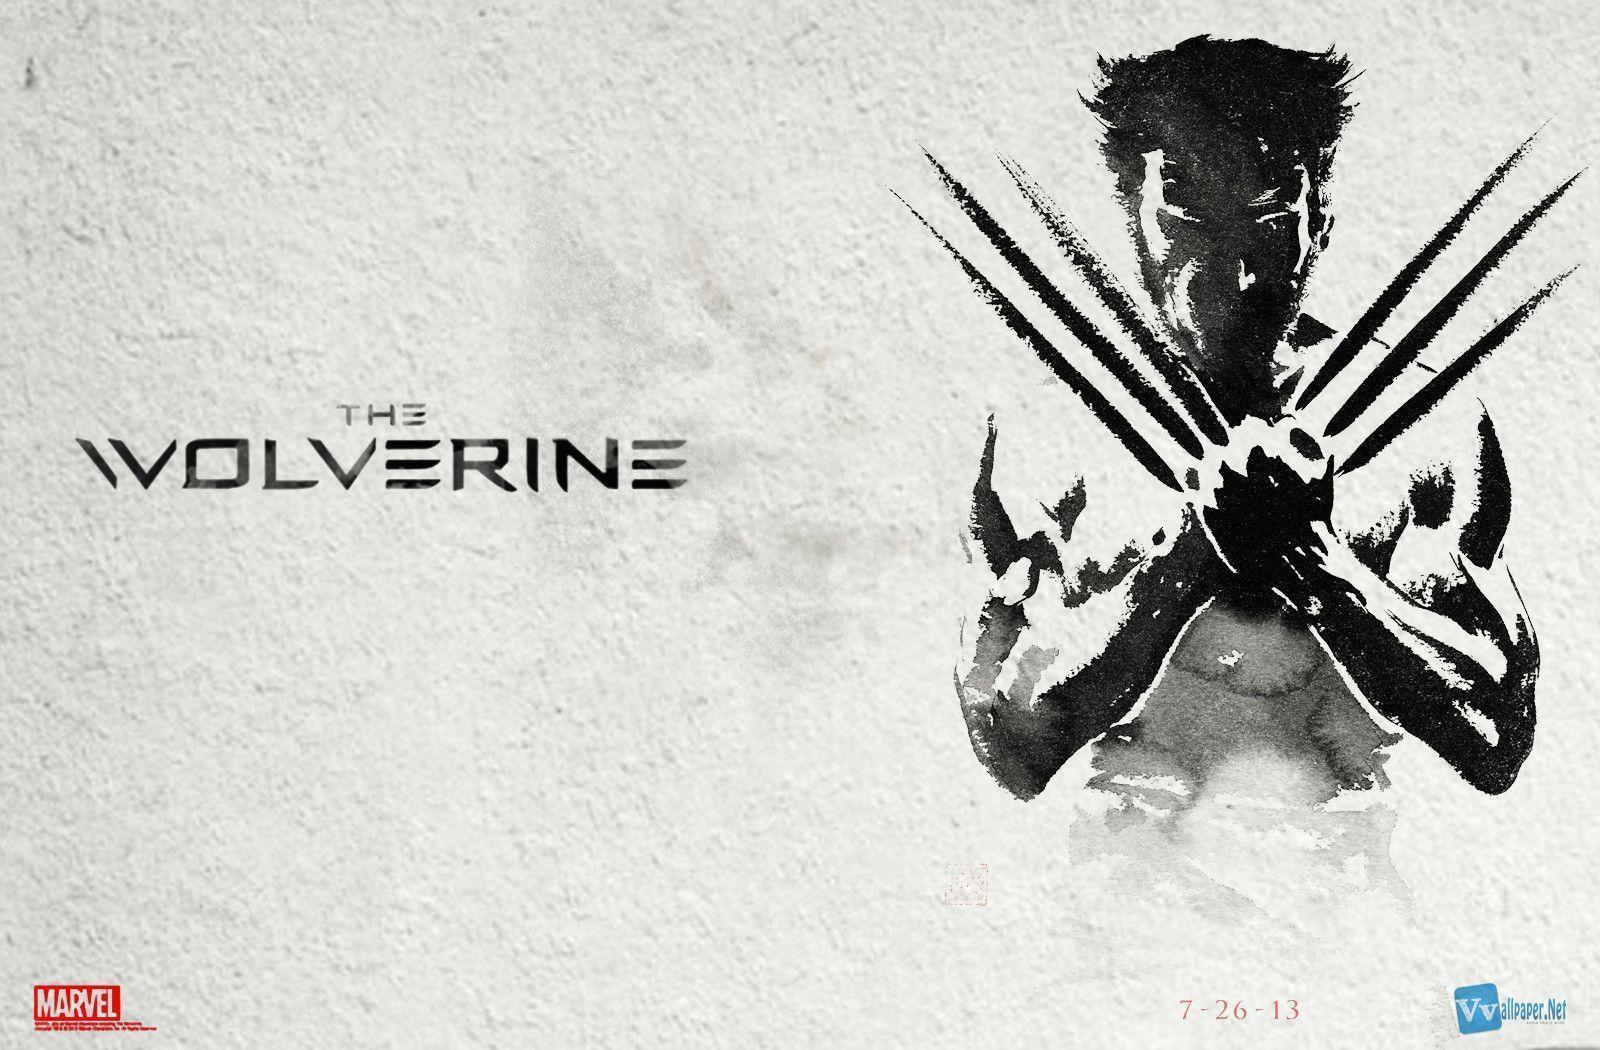 Wolverine wallpapers hd wallpaper cave marvel the wolverine movie 2013 hd wallpaper the modern voltagebd Images